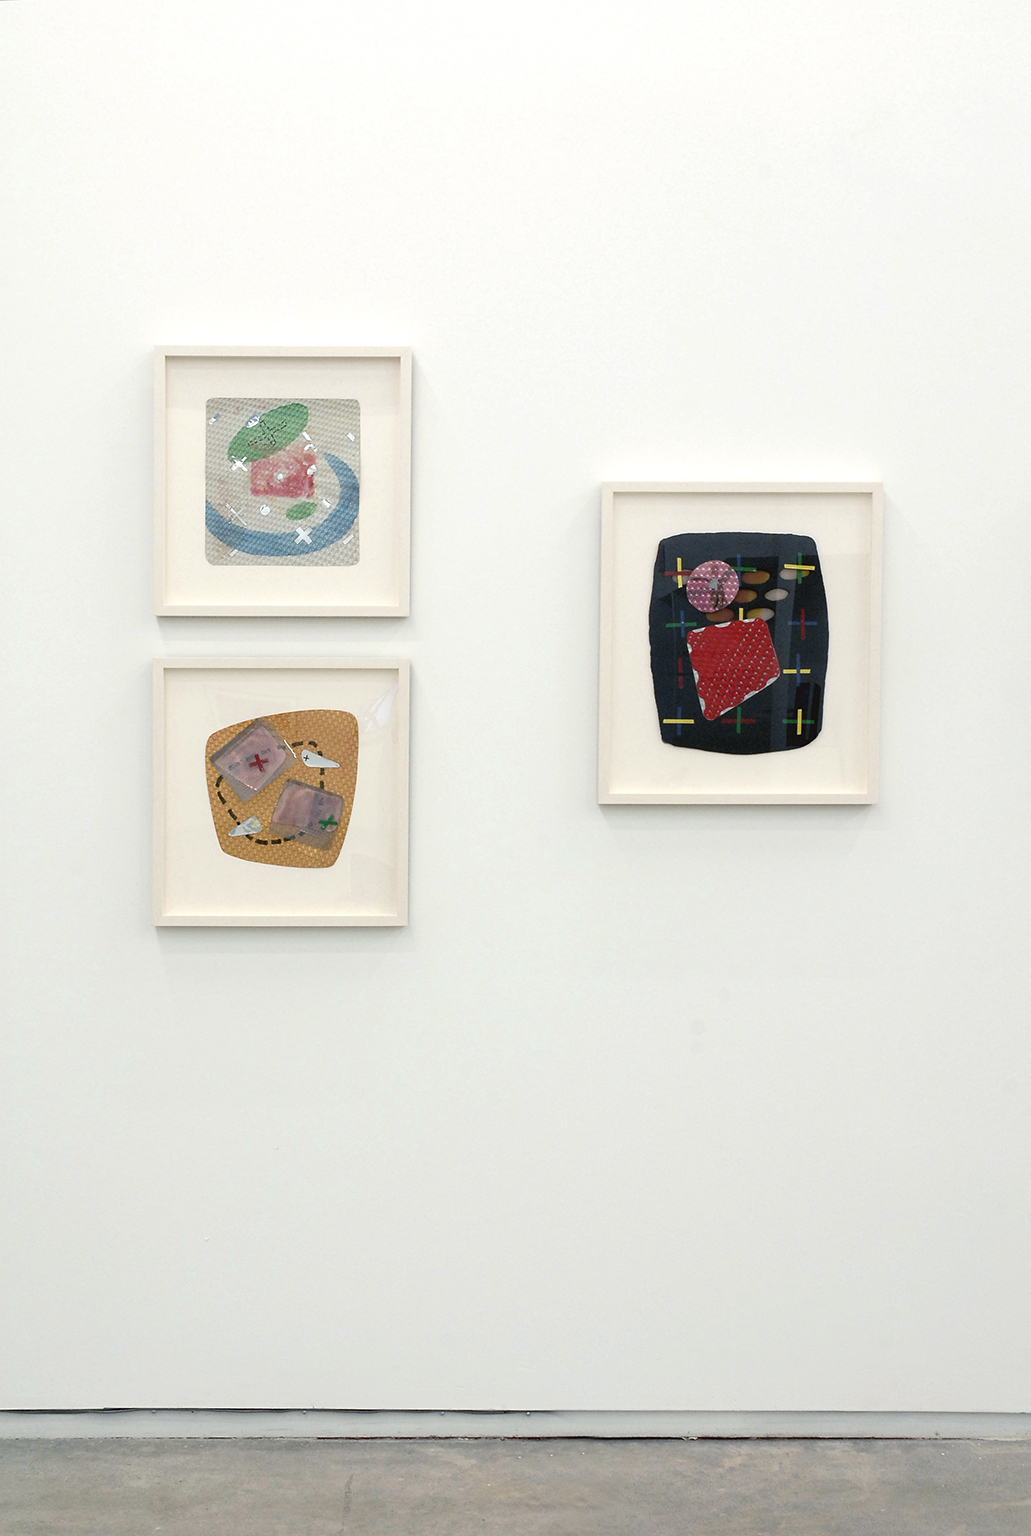 Jerry Pethick, installation view, Process as Work, Catriona Jeffries, 2008 by